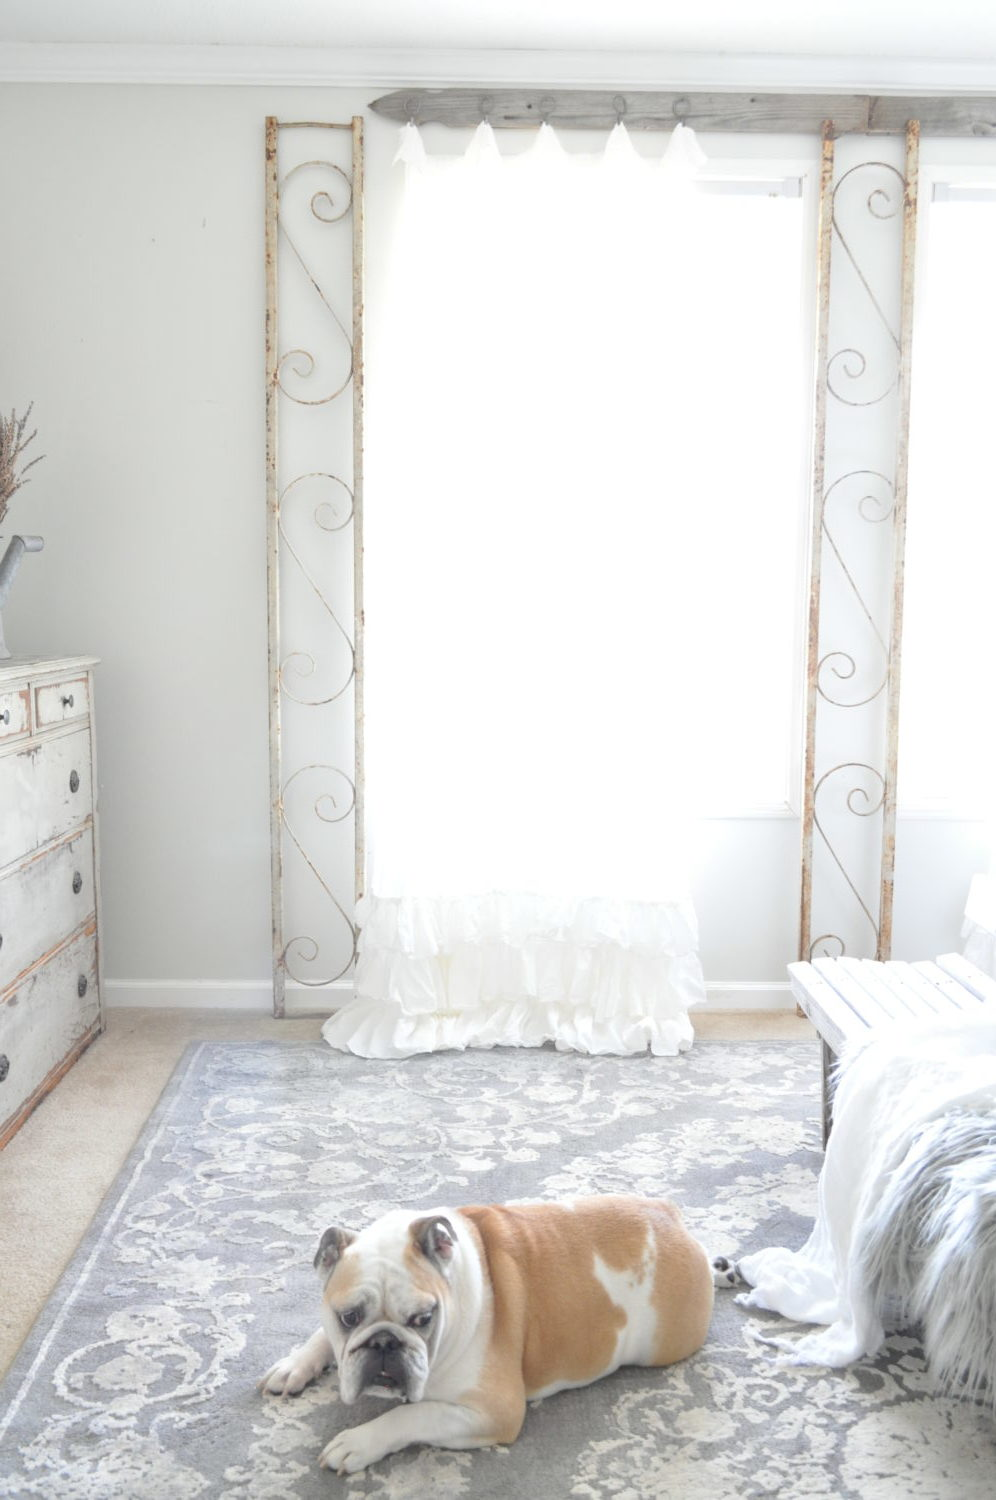 Creative Ways To Hang Curtains Becky S Farmhouse,Rustic Industrial Interior Design Bedroom